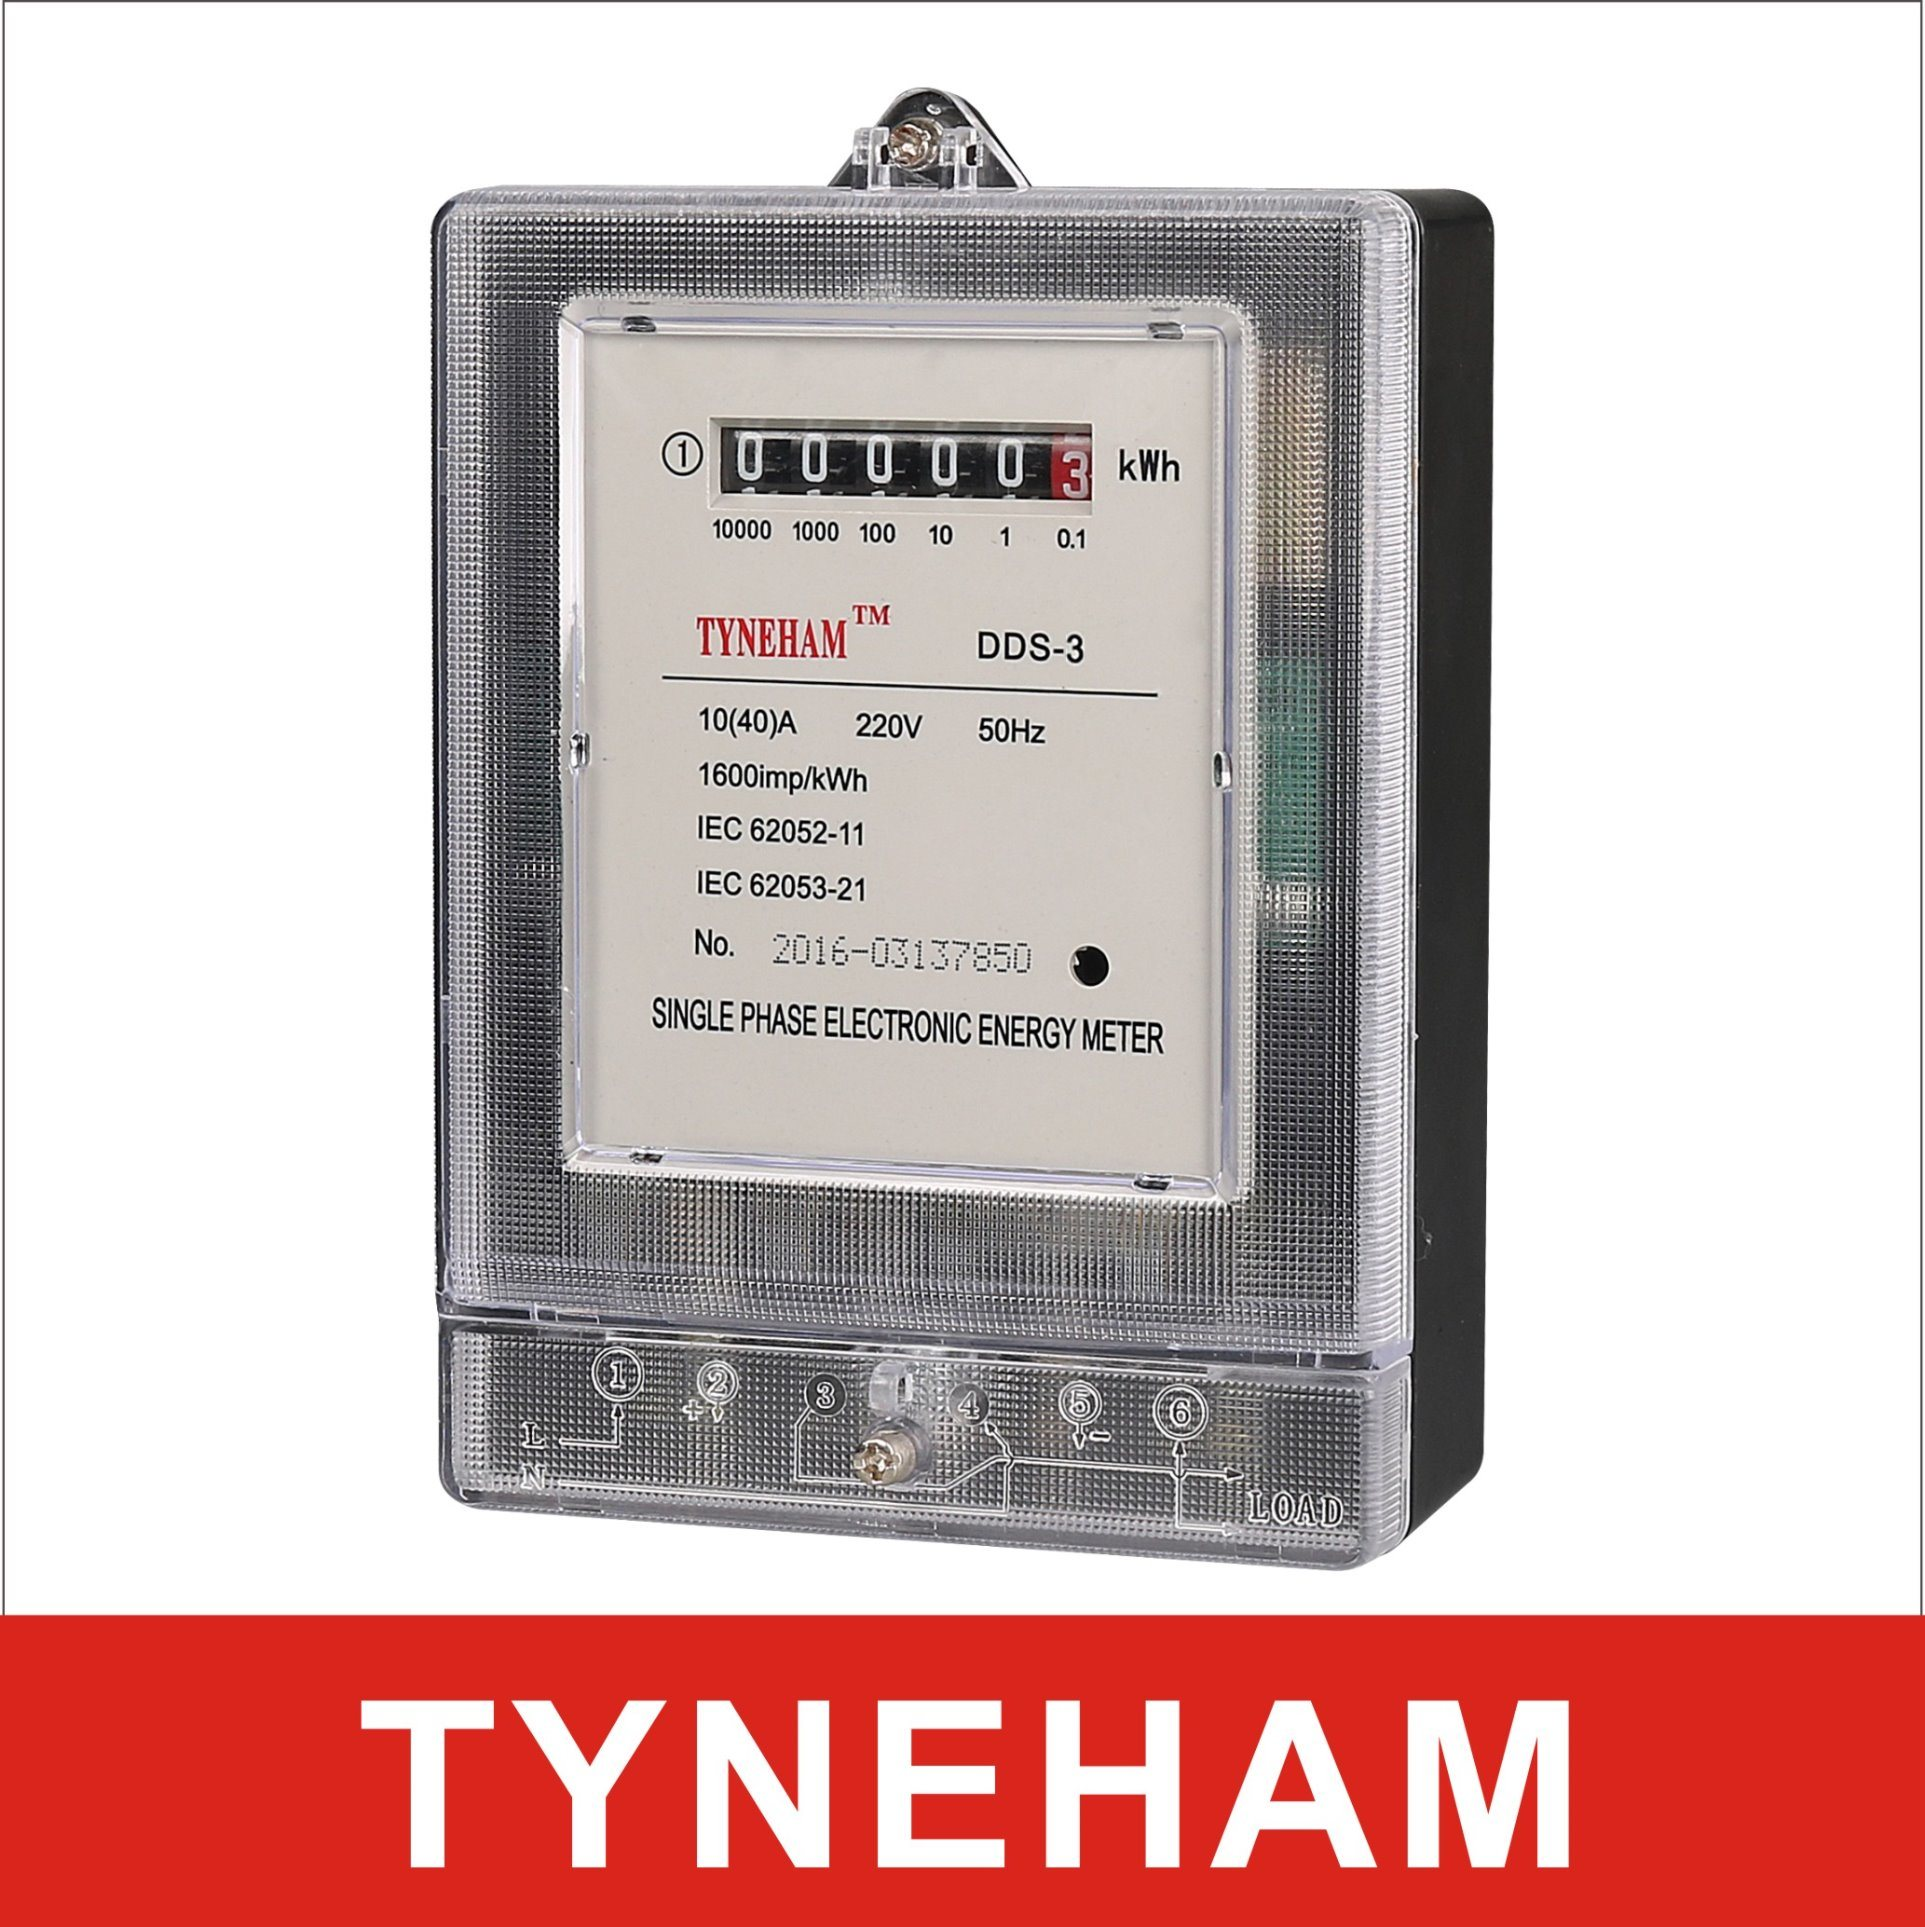 Dds-3 Series Single Phase Electronic Energy Meter